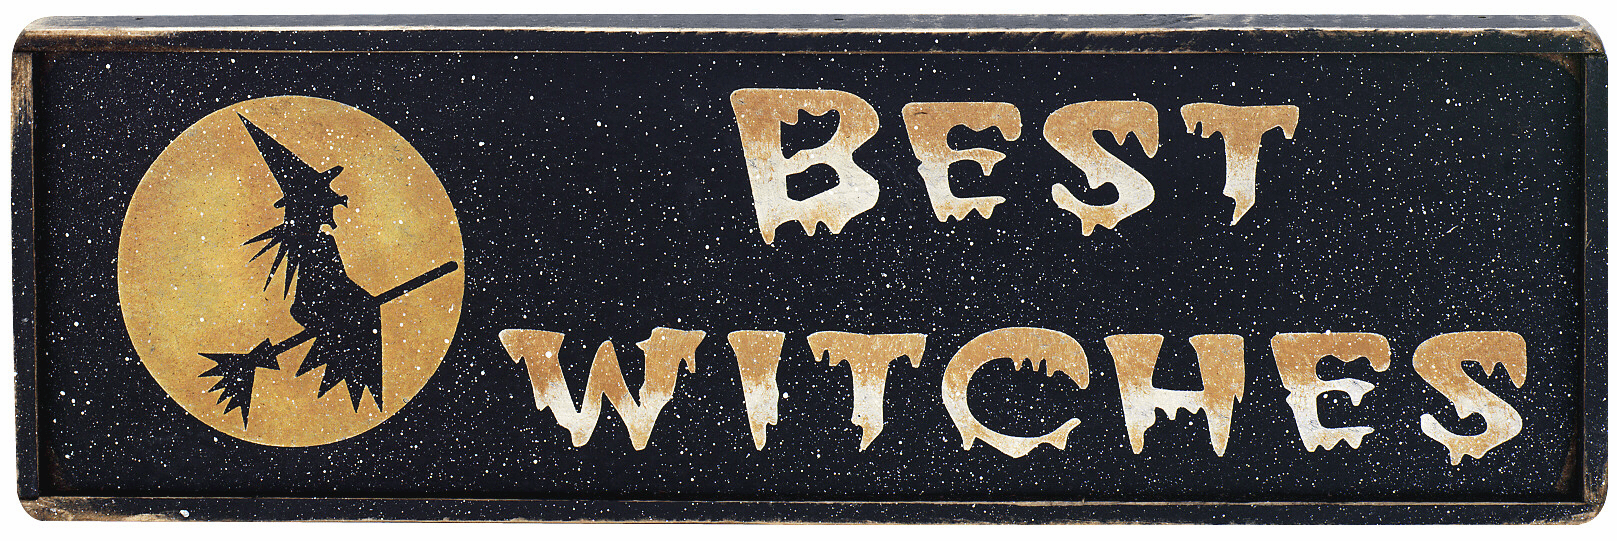 Best Witches - Halloween Witch